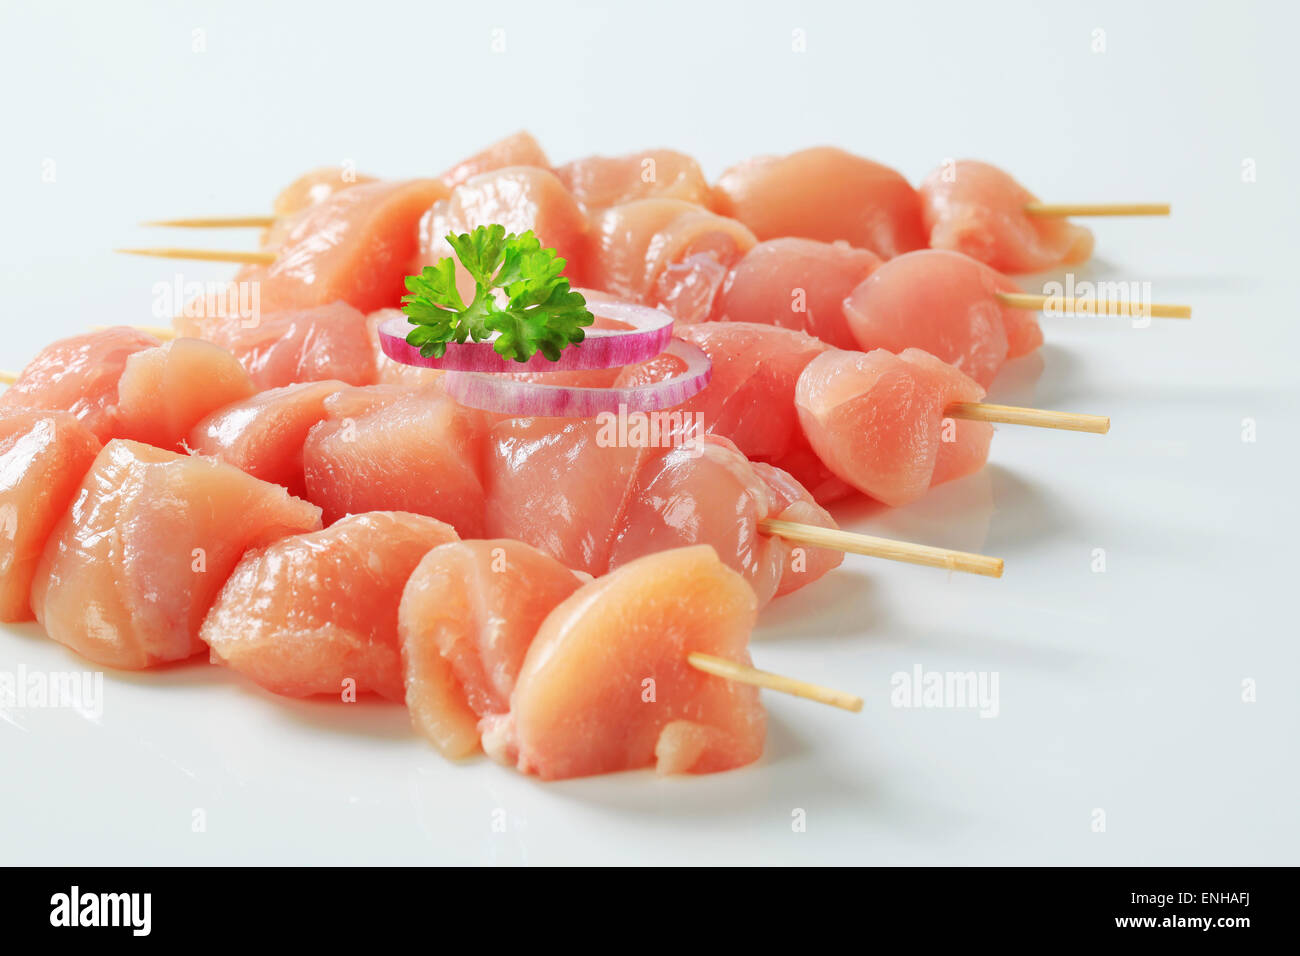 pieces of raw chicken meat on skewers stock photo 82130710 alamy